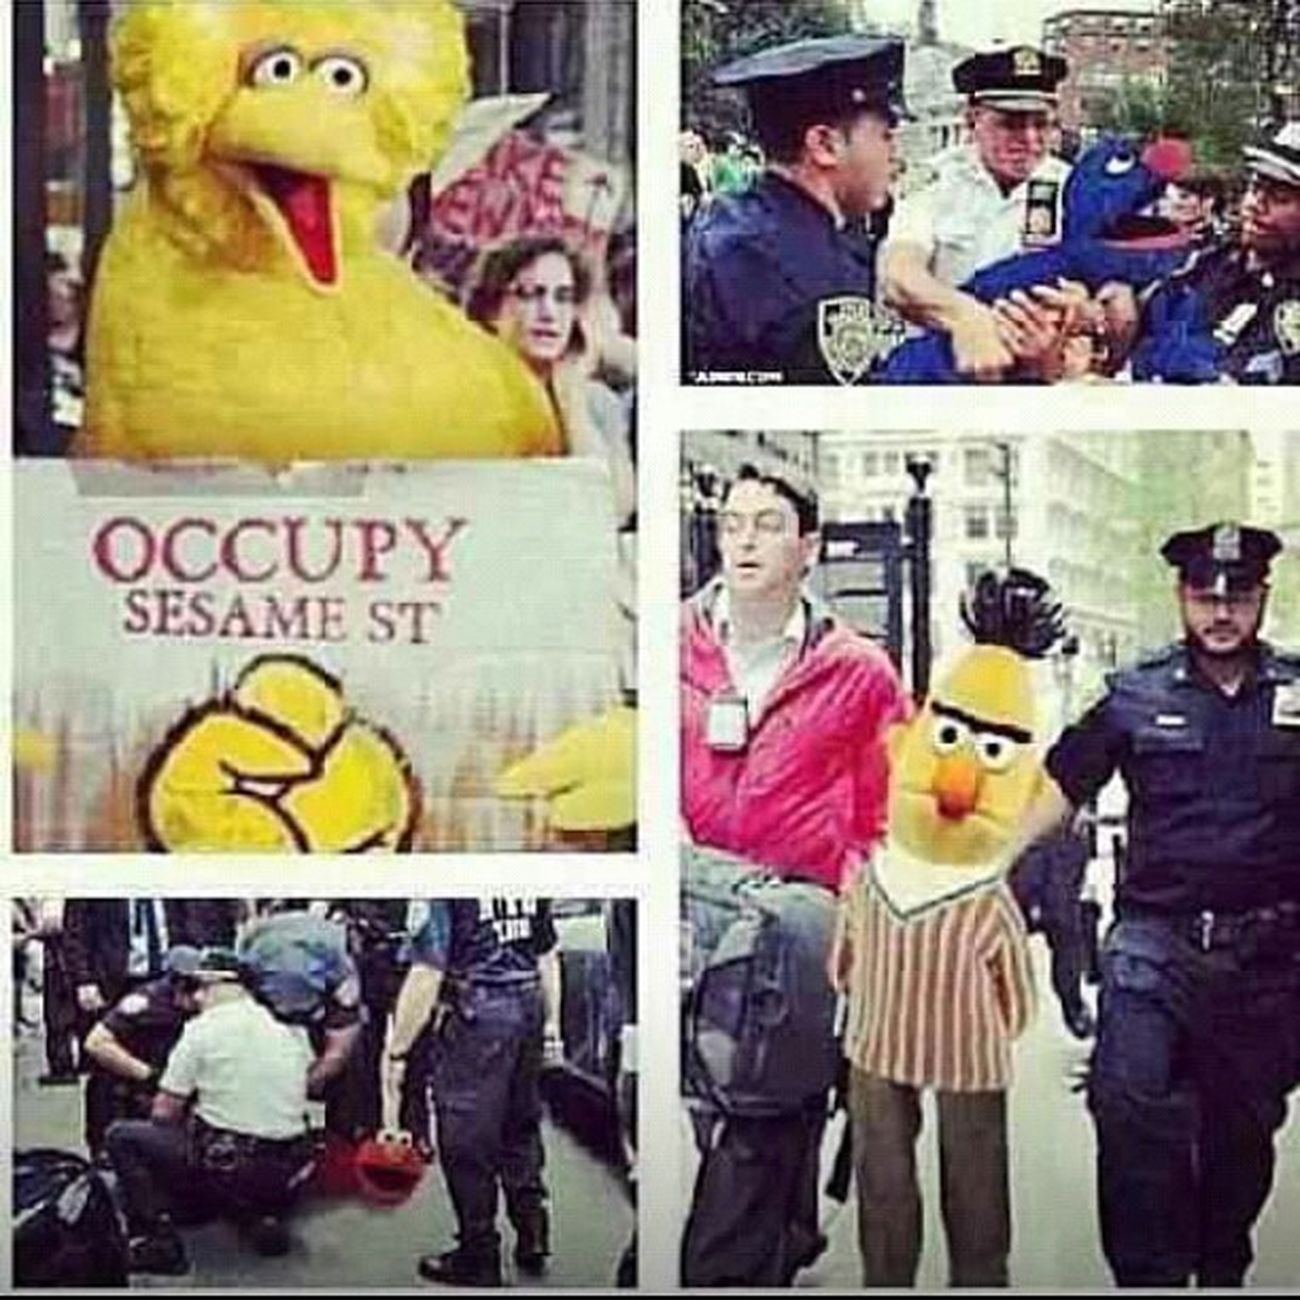 Damn ? just got real lol TeamObama Freebigbird Freeelmo Freebert freegrover repost